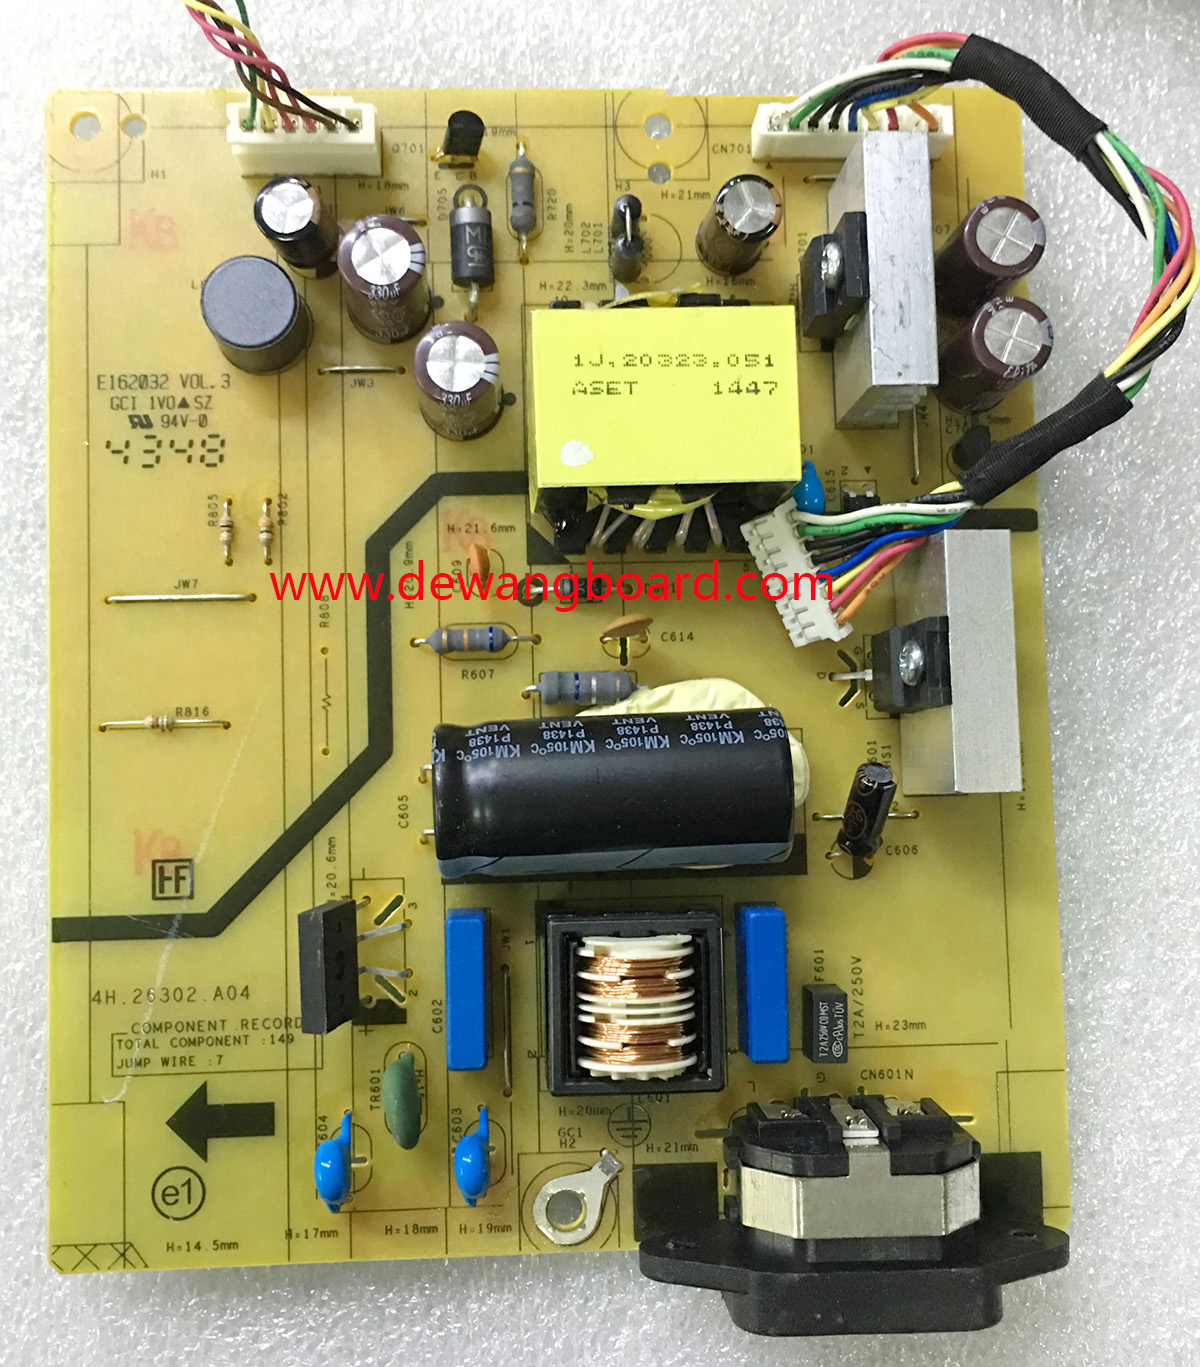 4H.26302.A04 dell P2414H power supply board (led 6p)